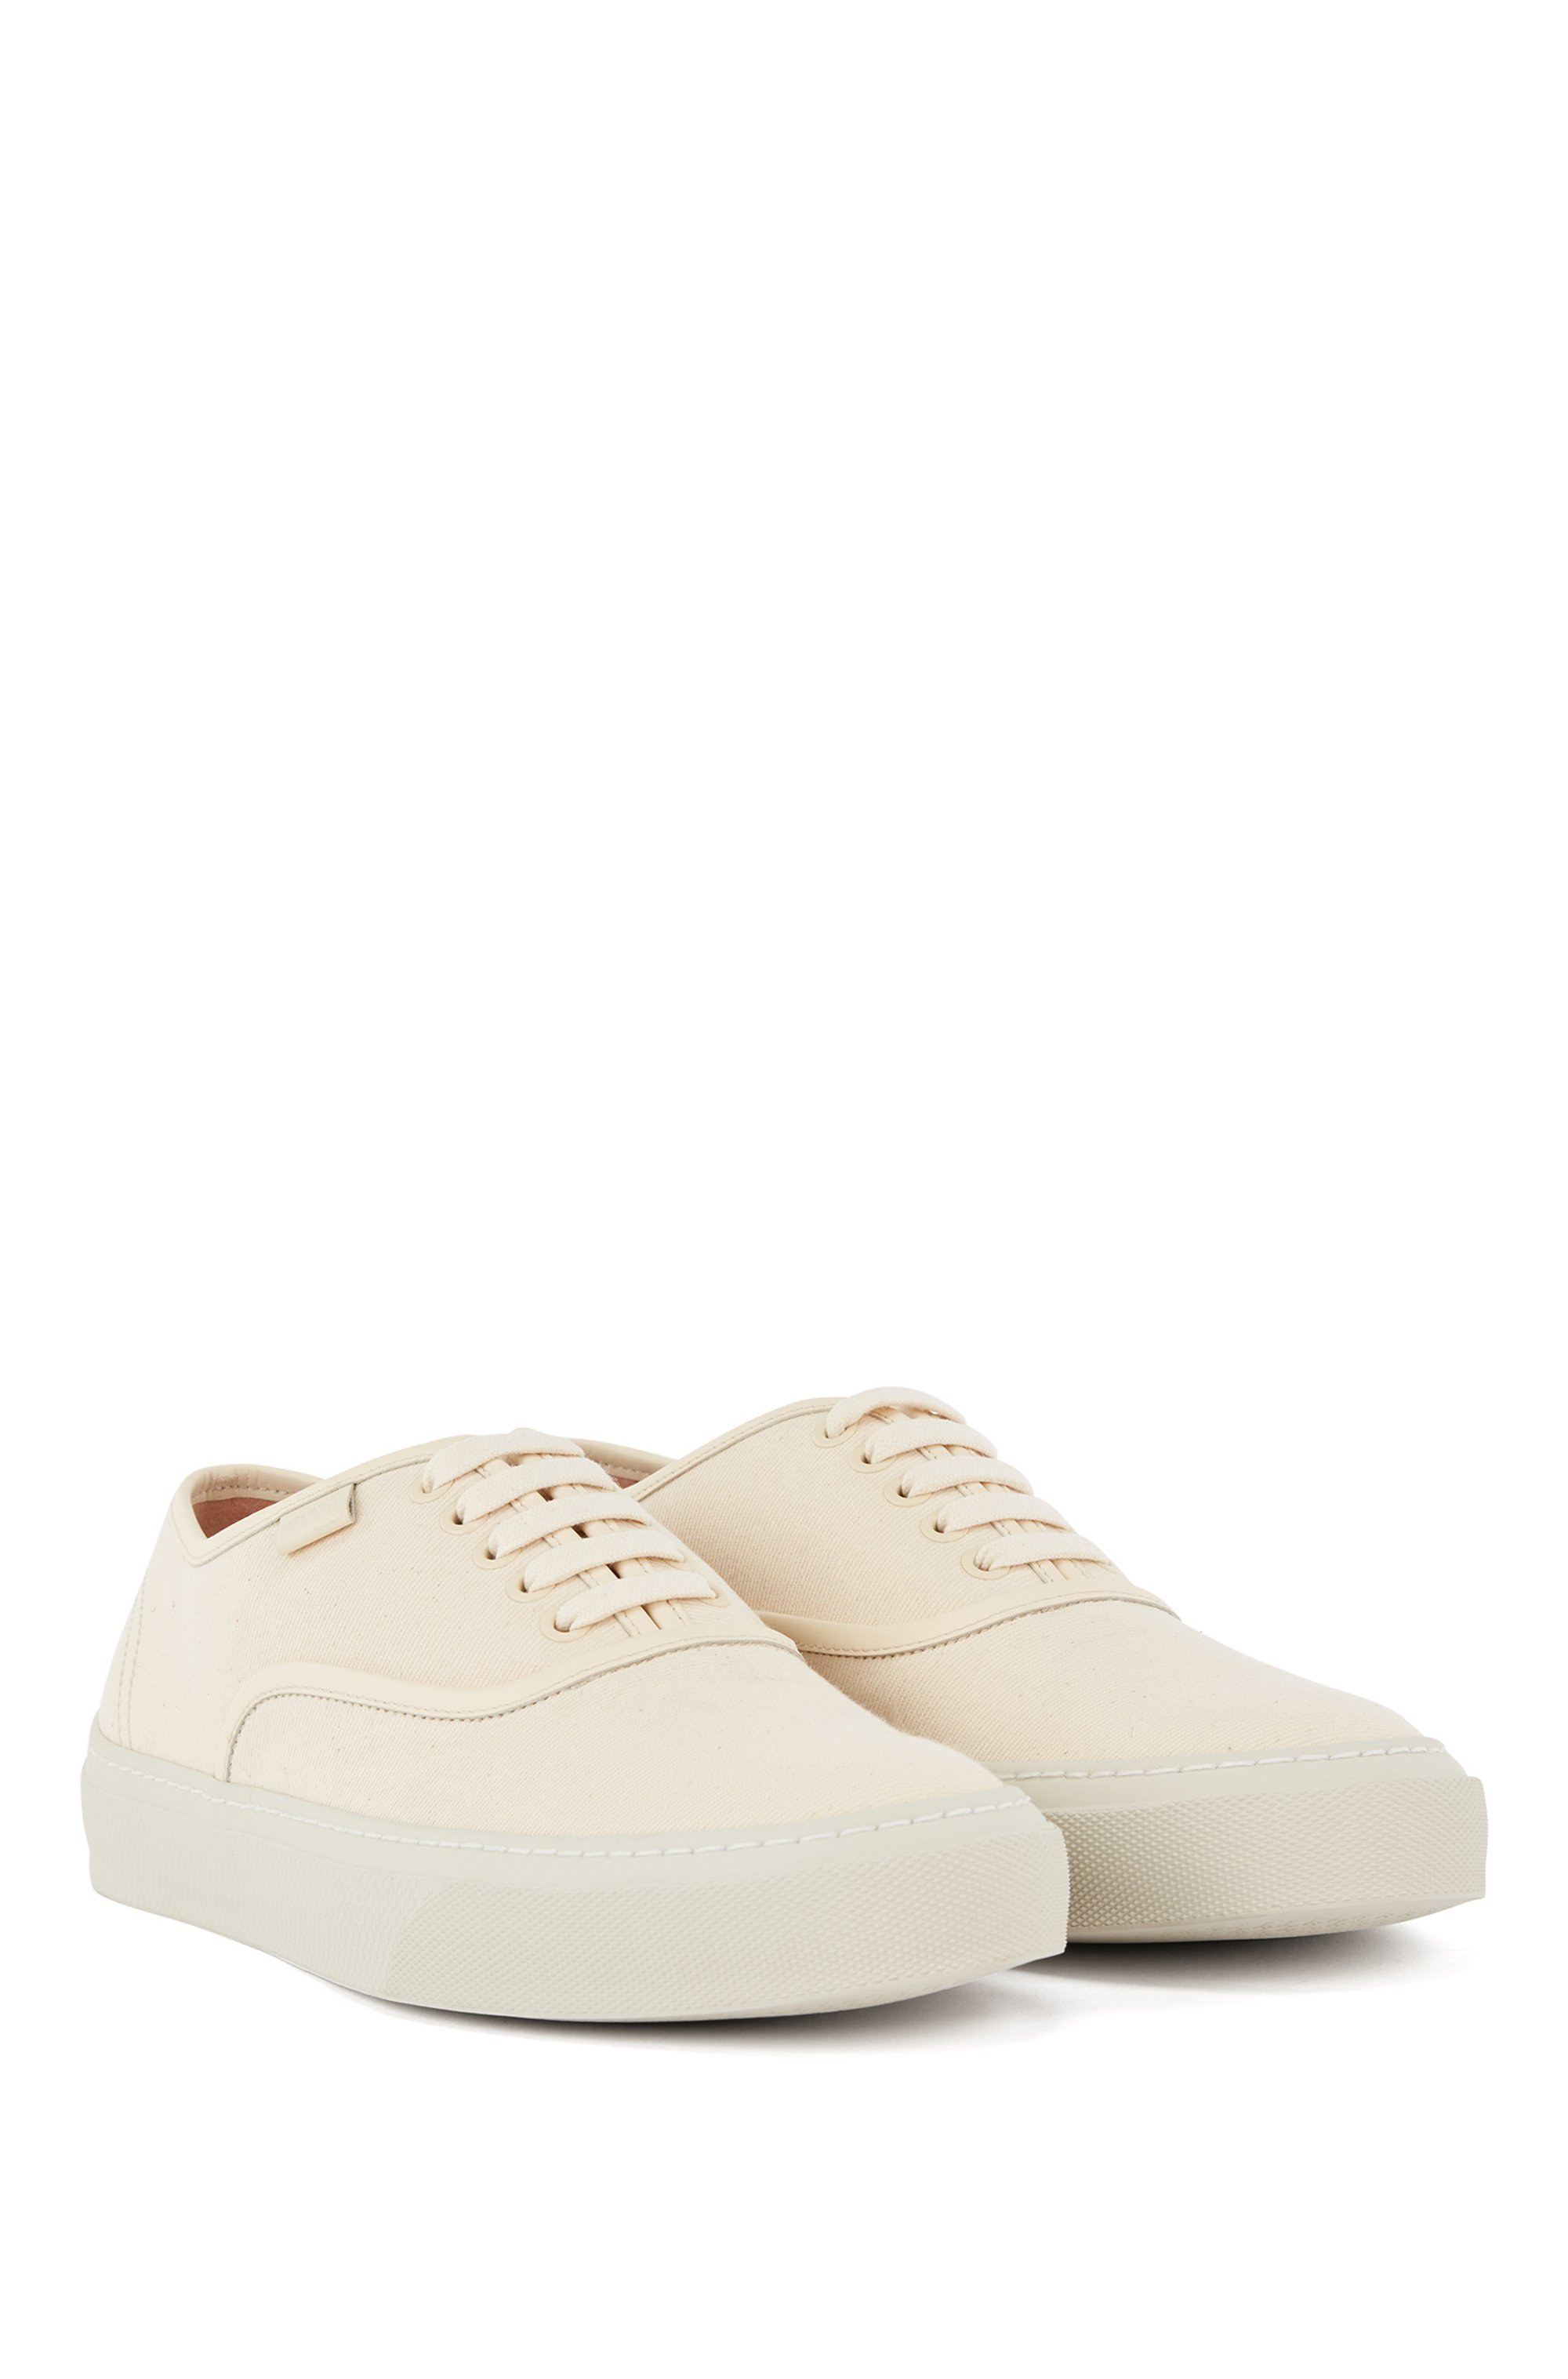 Italian-made trainers with organic-cotton-blend uppers